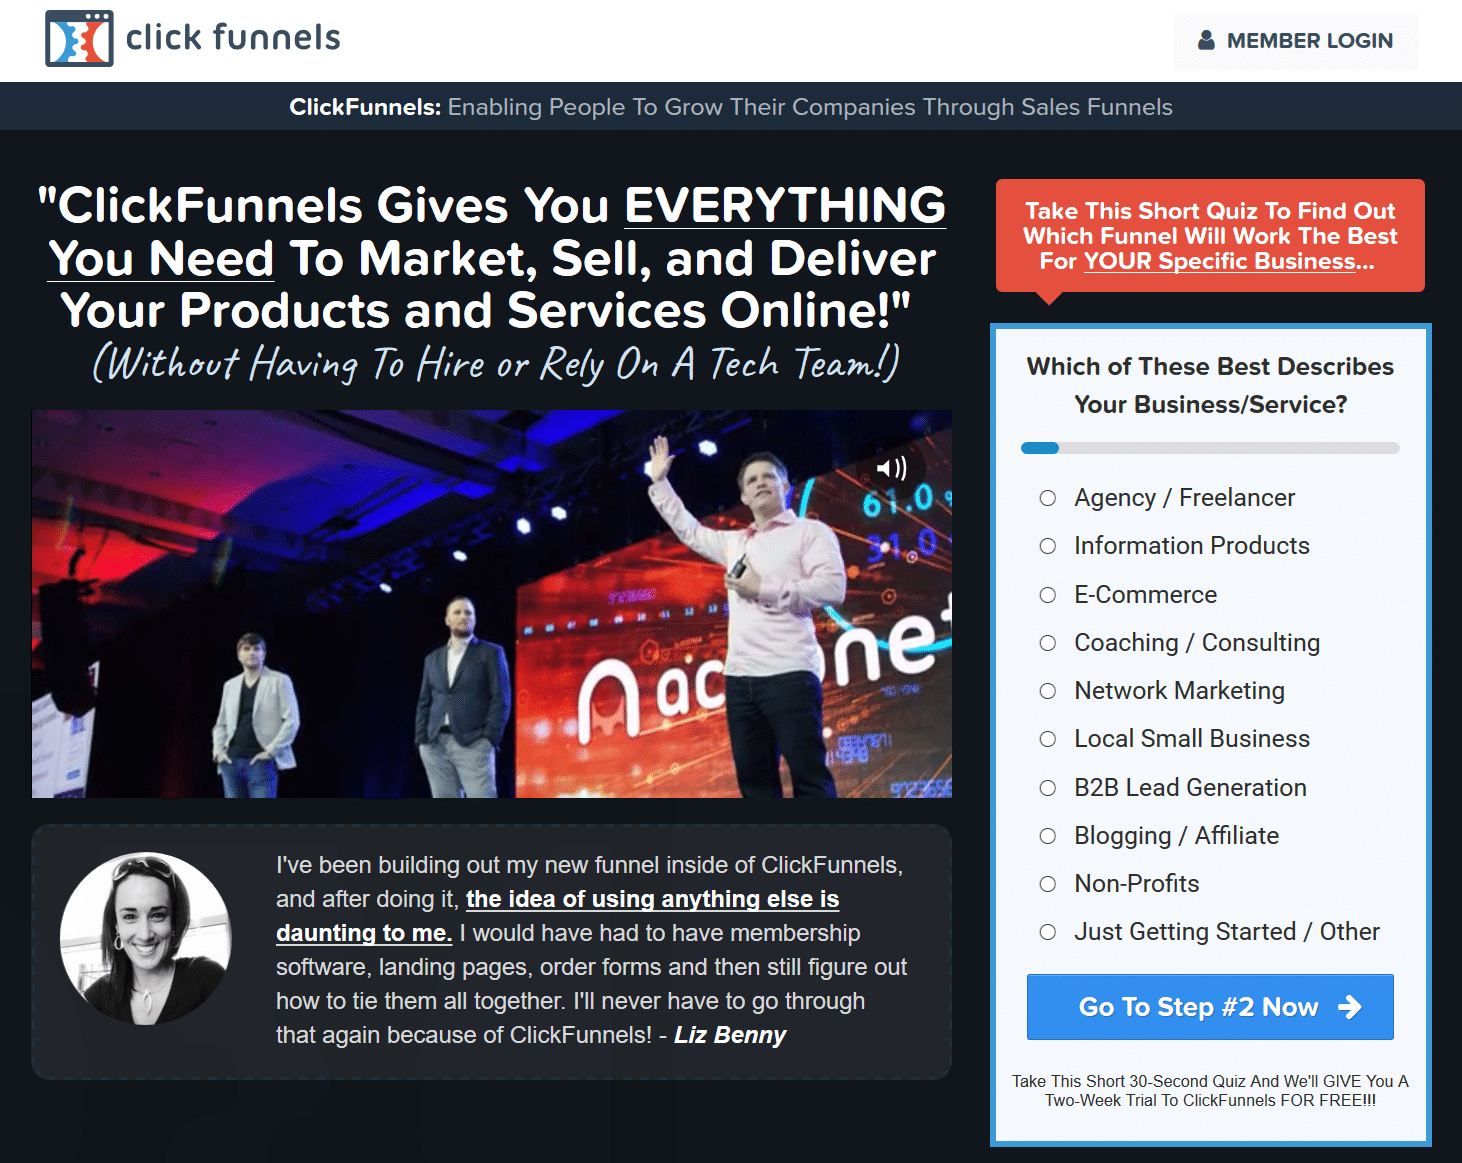 How To Submit Payment On Clickfunnels On Order Page